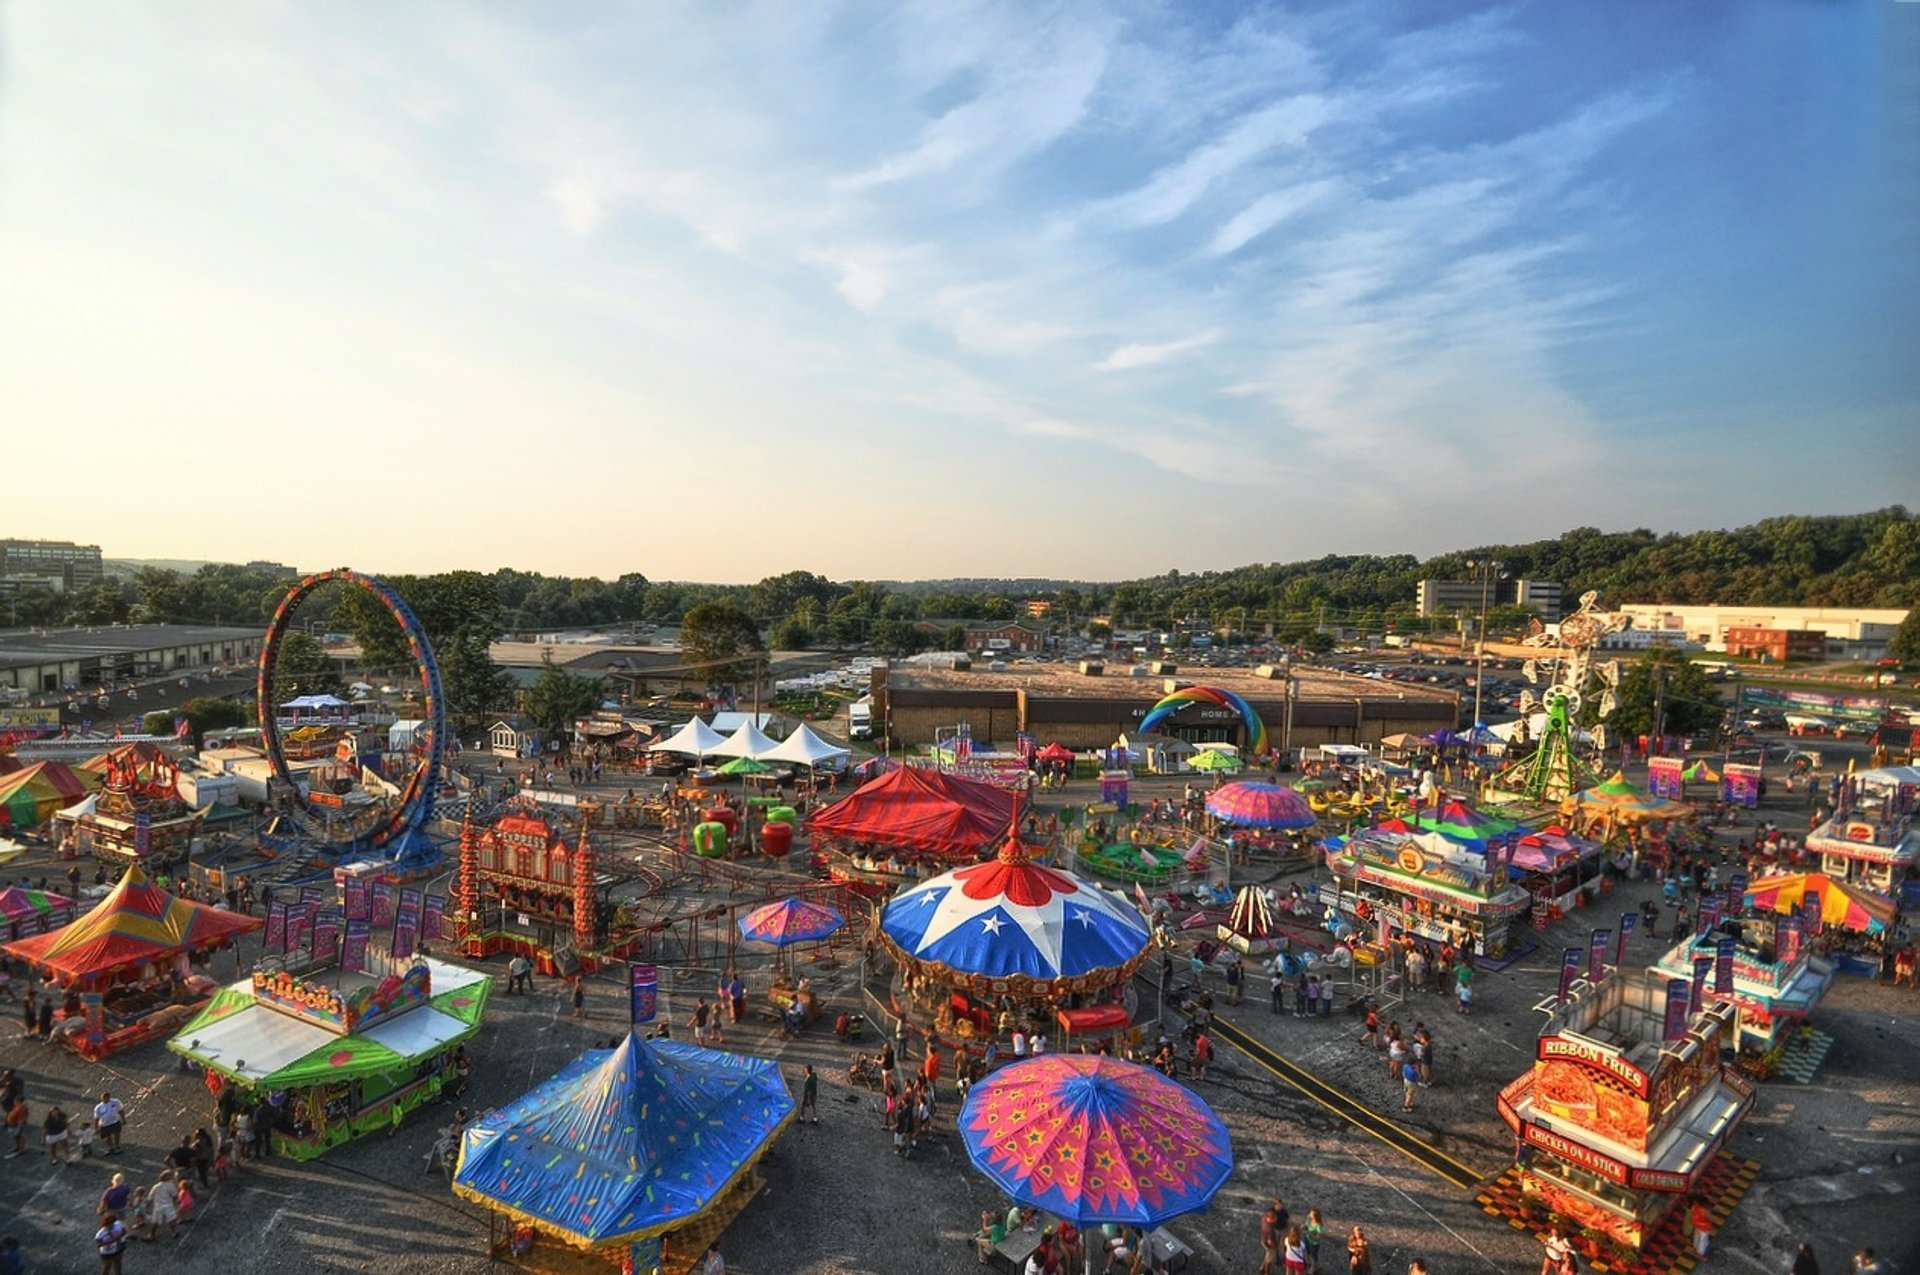 Maryland State Fair in Maryland 2020 - Best Time